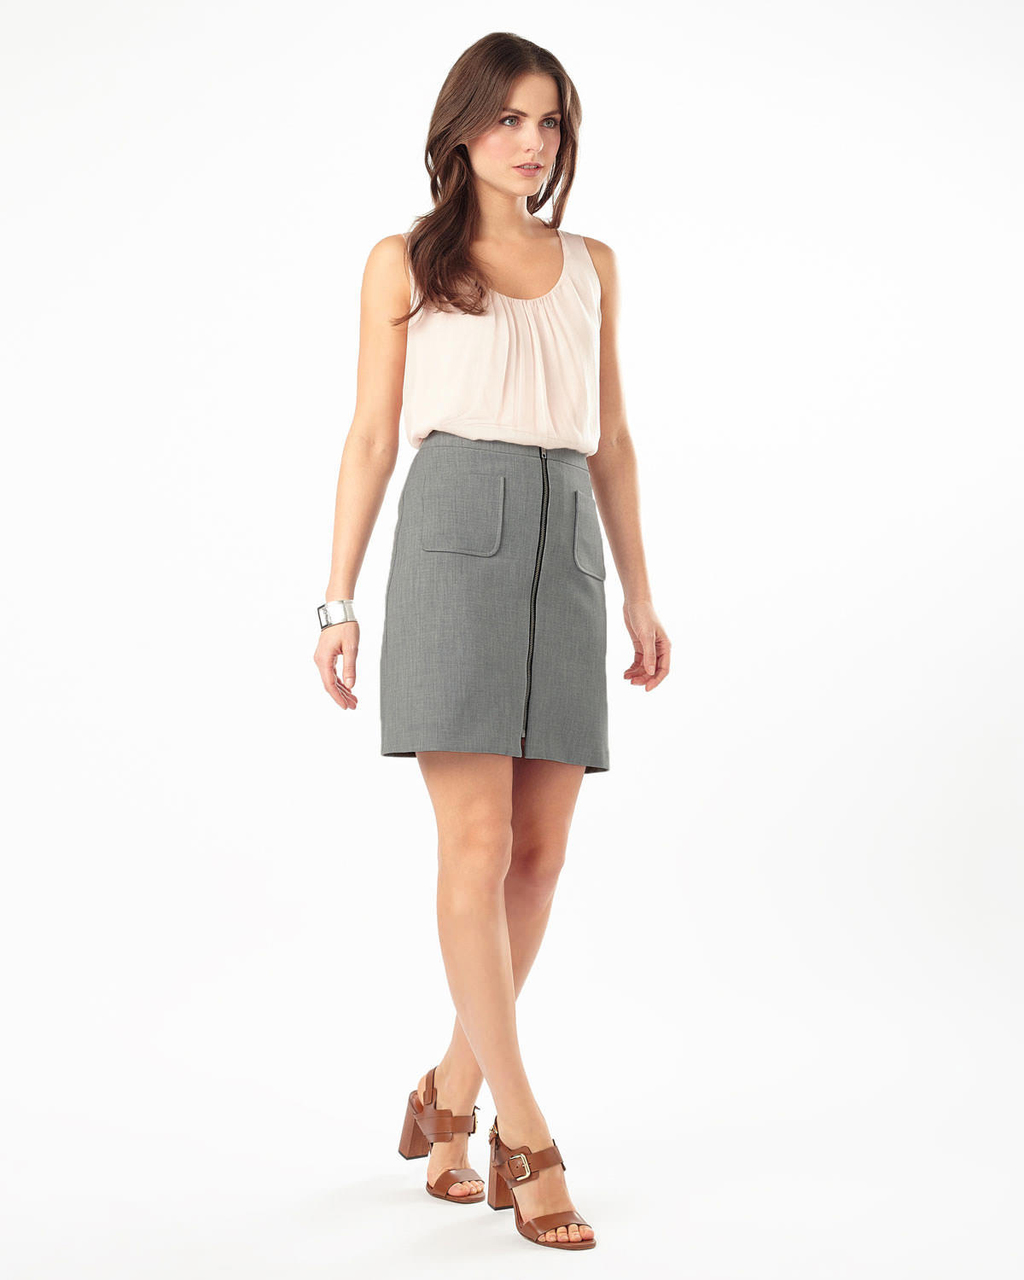 Drue Melange Skirt - pattern: plain; style: straight; hip detail: front pockets at hip; waist: high rise; predominant colour: mid grey; occasions: casual, creative work; length: just above the knee; fibres: polyester/polyamide - stretch; fit: straight cut; pattern type: fabric; texture group: other - light to midweight; season: s/s 2016